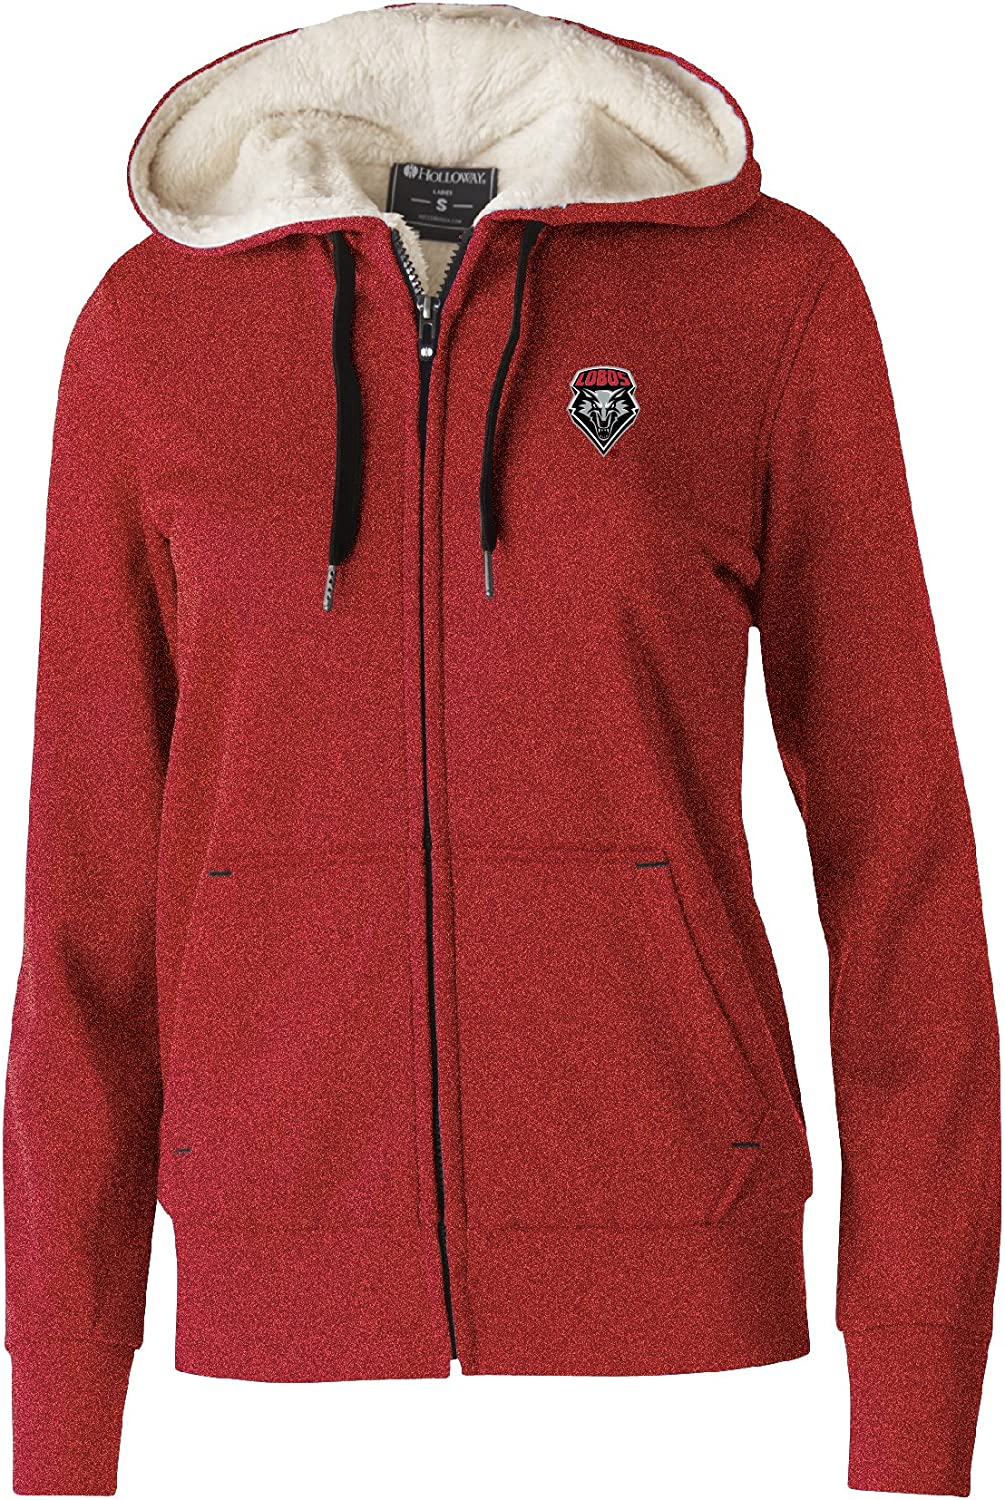 Ouray Sportswear NCAA Cheap mail order specialty store Women's's Sherpa Jacket Artillery We OFFer at cheap prices